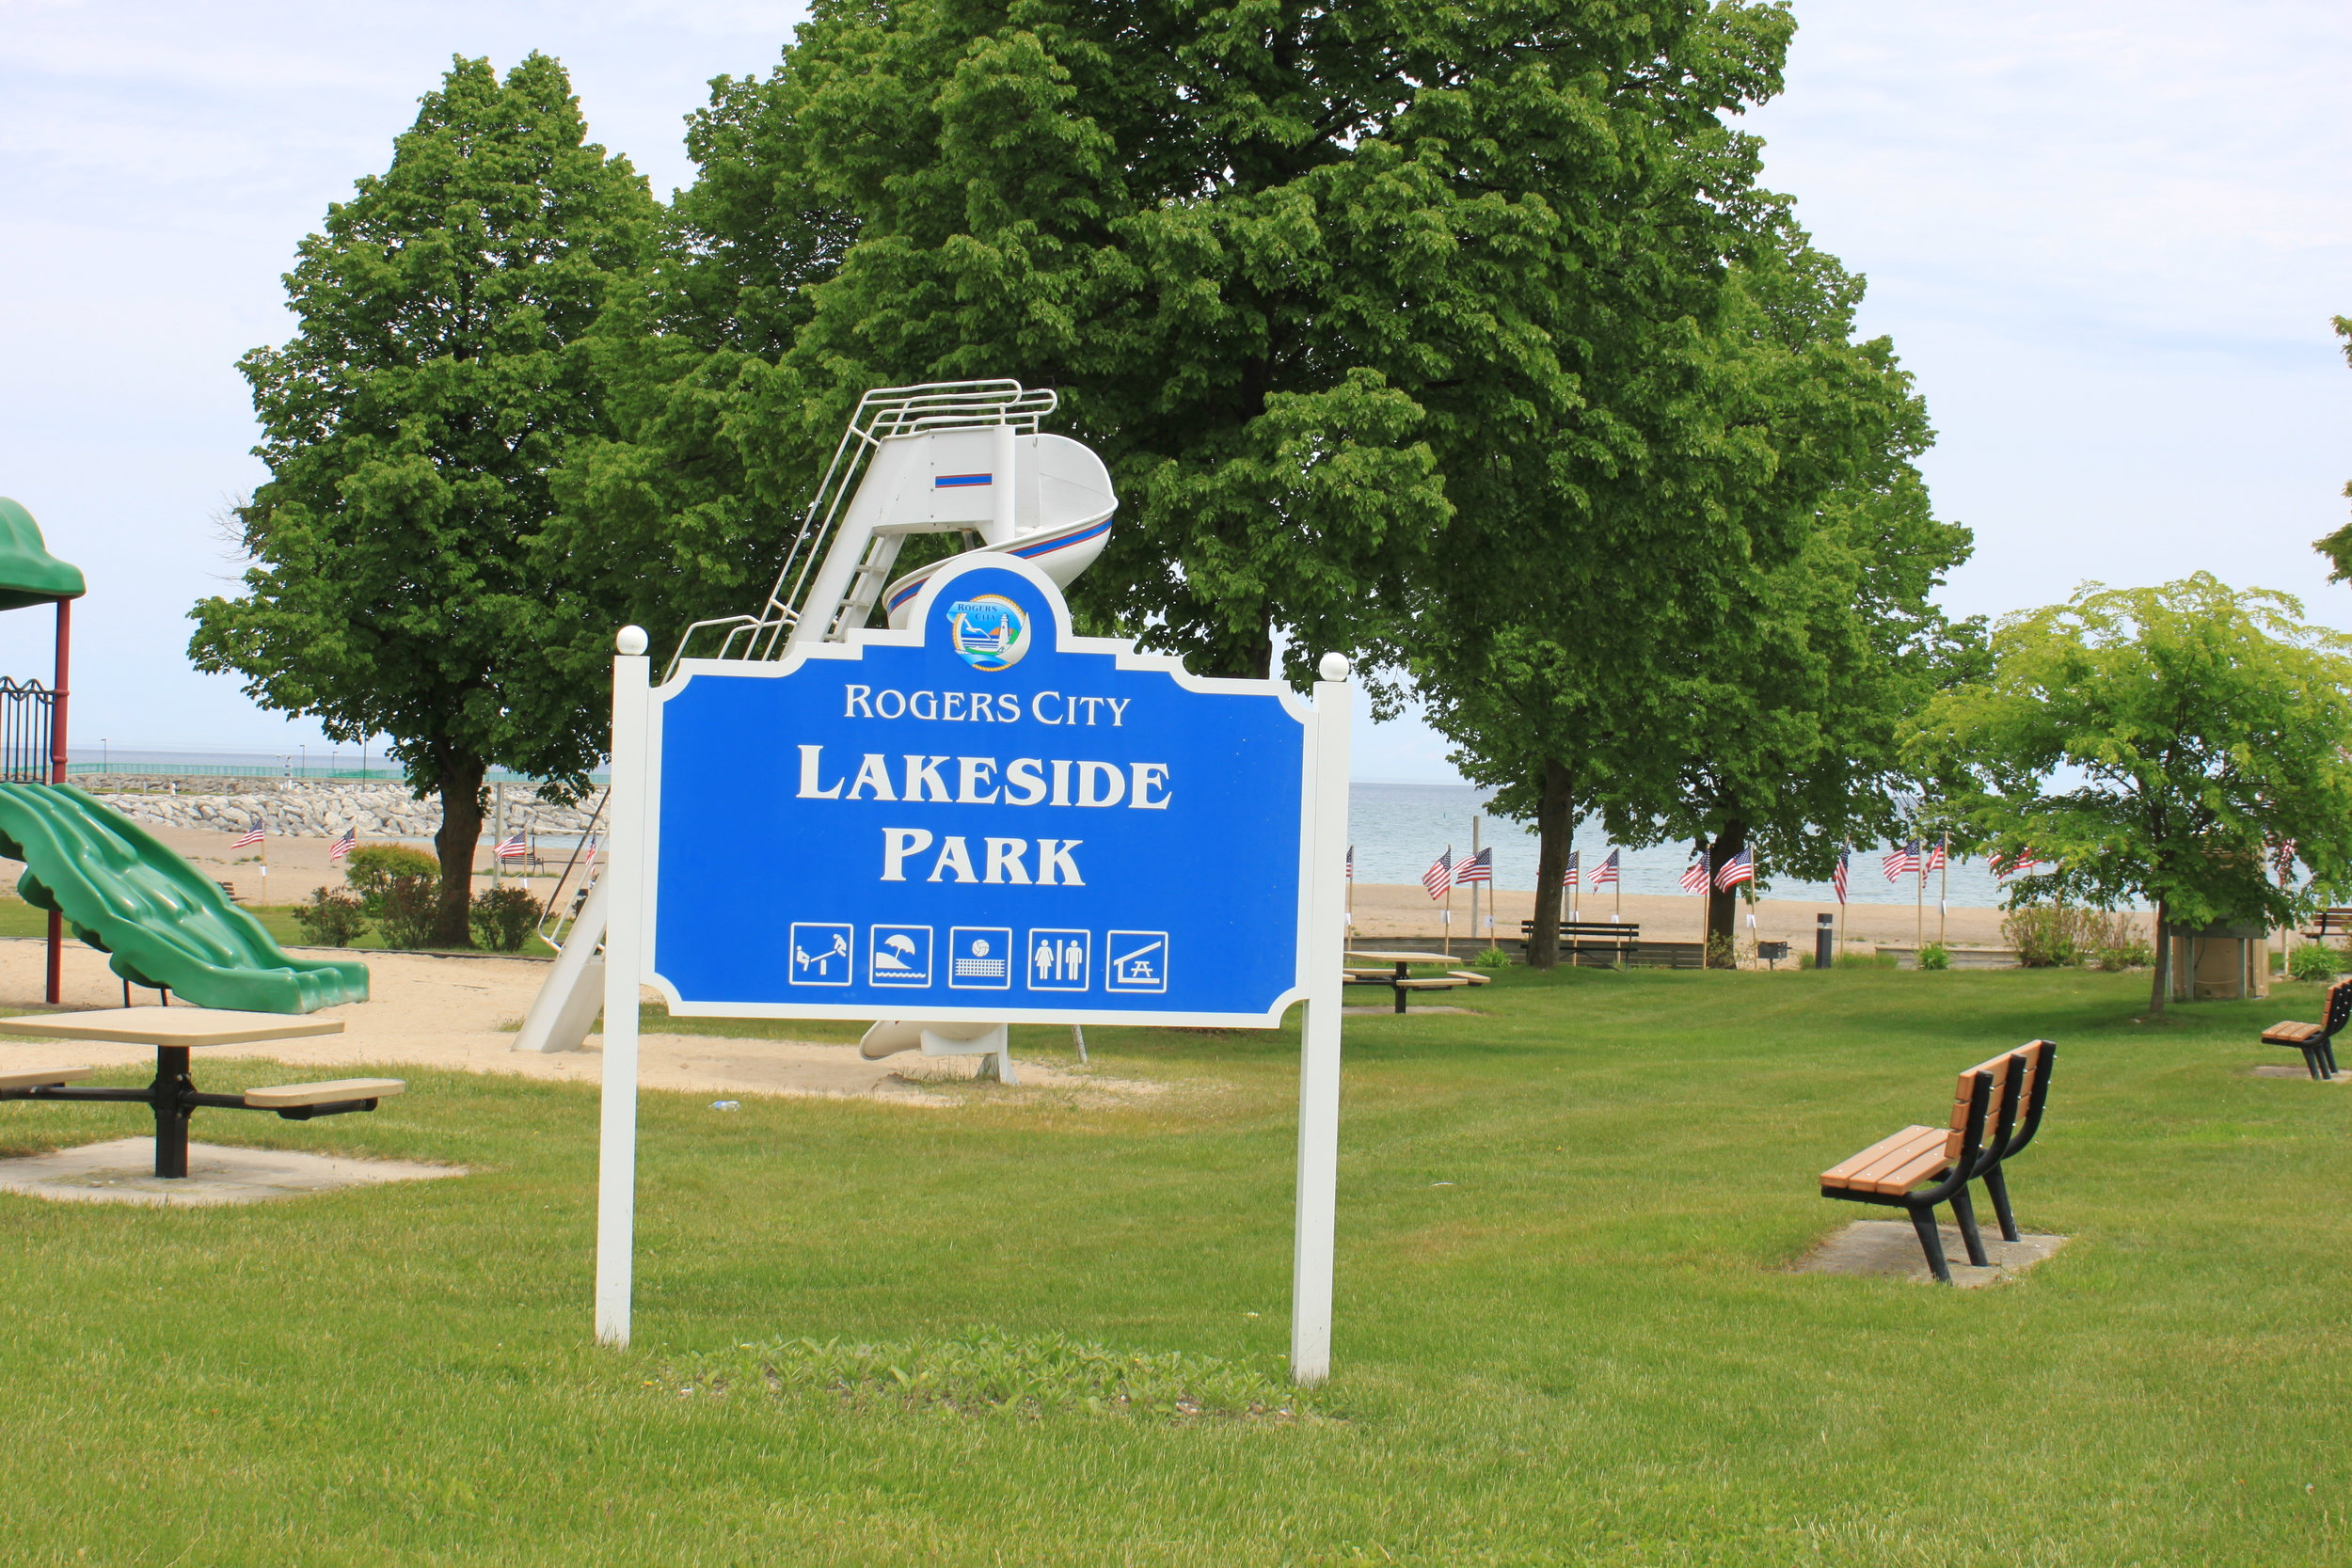 Lakeside Park  - Lake Street10 acres bordering Lake Huron featuring the Rogers City Marina l swimming beach with volleyball courts, playgrounds, basketball courts, and a large pavilion. The park also is home to a sailor's memorial, a large band shell.